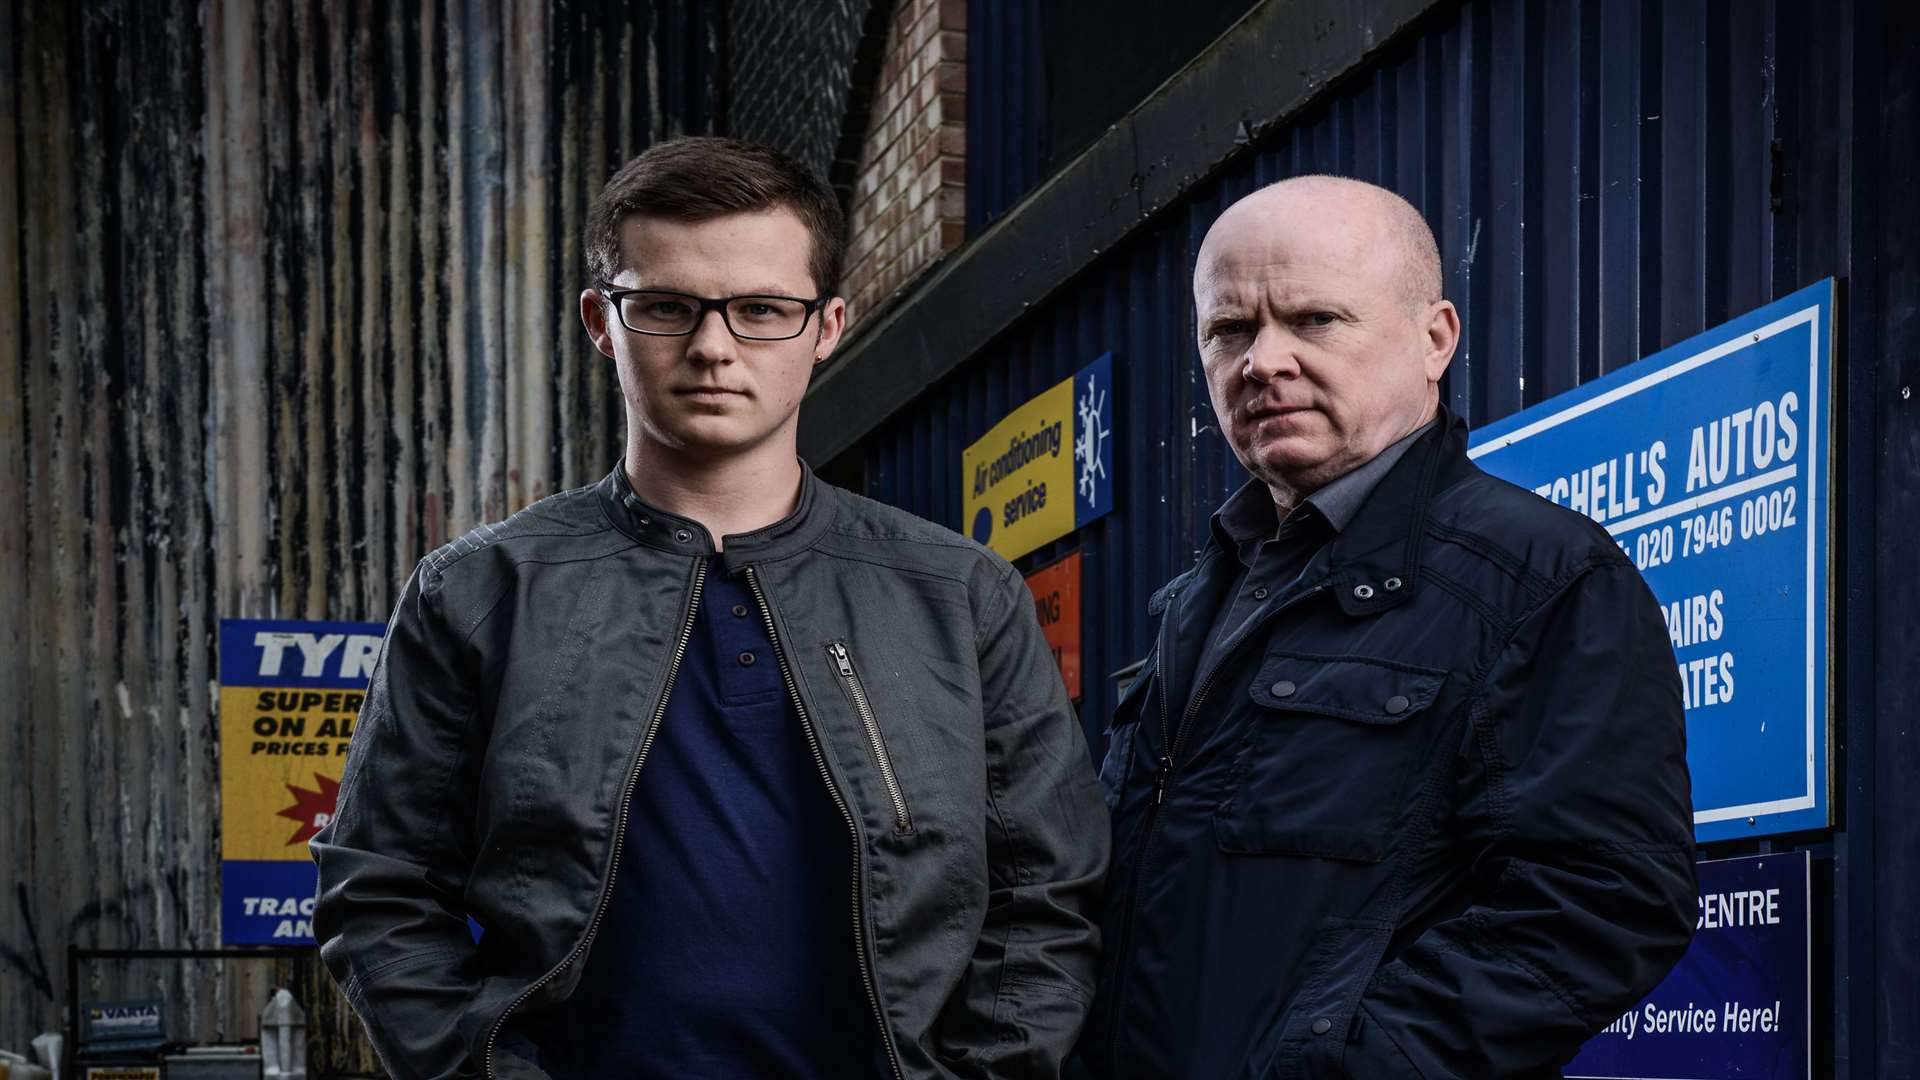 Harry Reid, who plays Ben Mitchell, with his on-screen dad Phil Mitchell, played by Steve McFadden. Picture: BBC/Kieron McCarron.